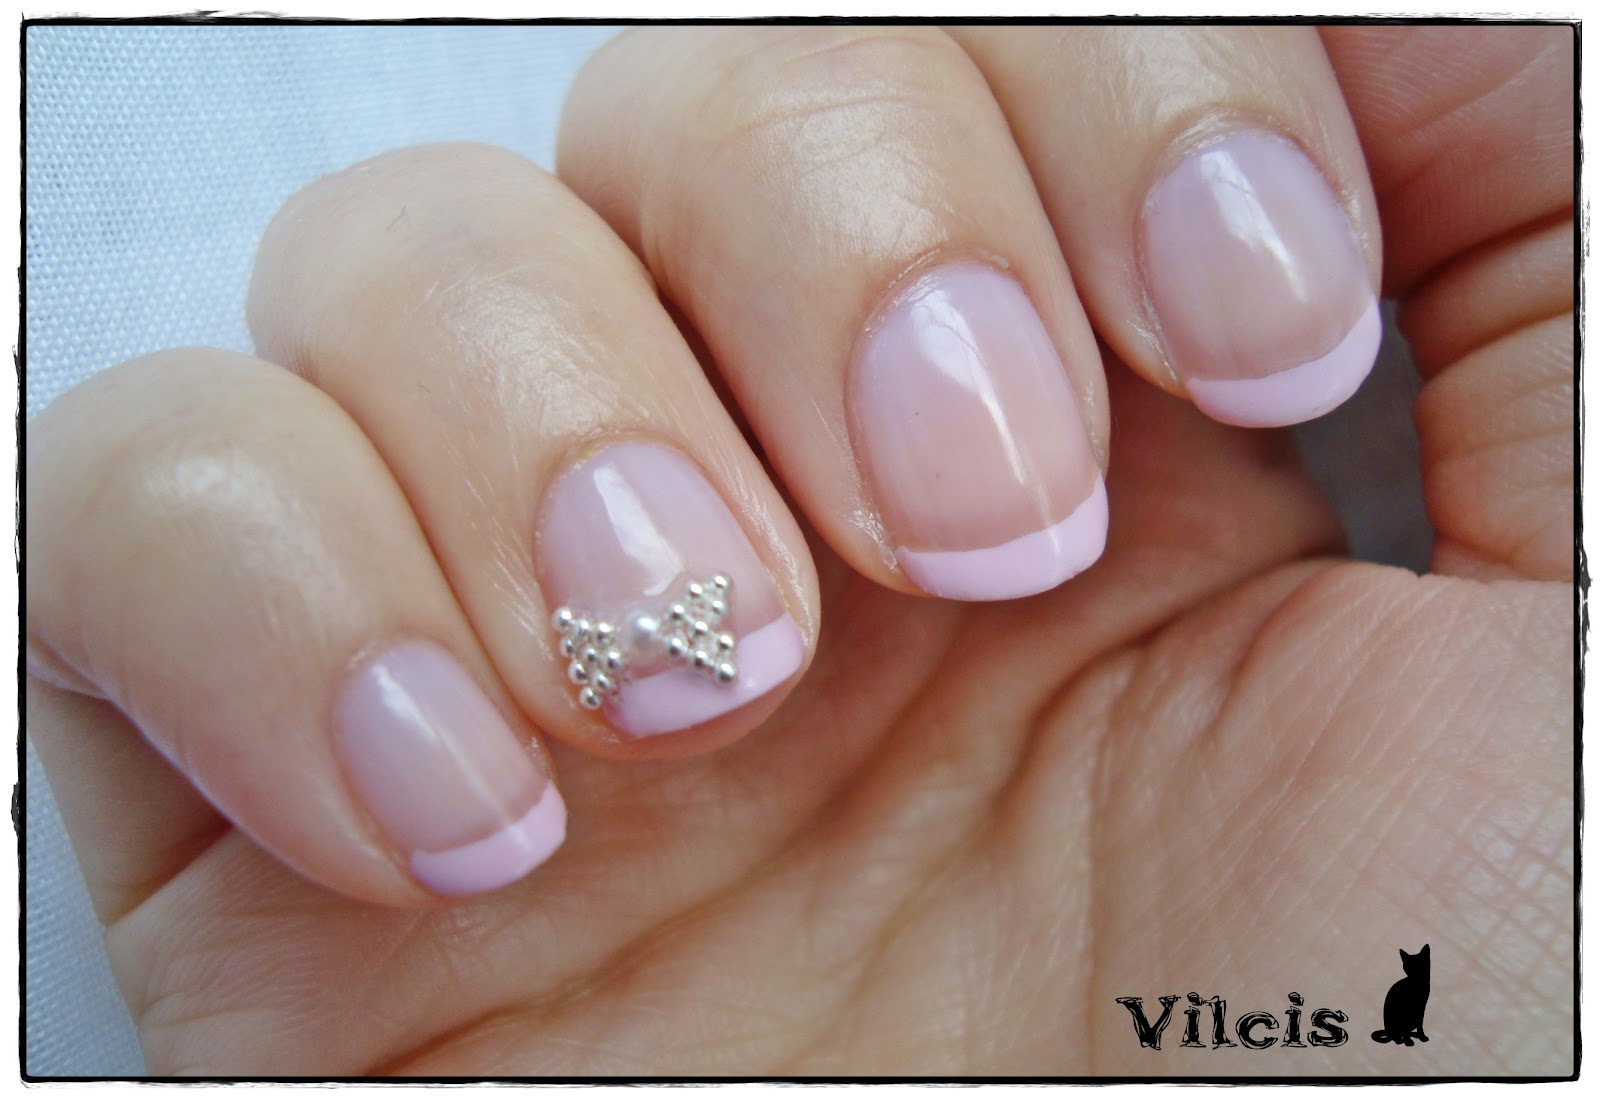 Vilcis nail designs desaf o 31 d as d a 15 u as for Disenos de unas 2012